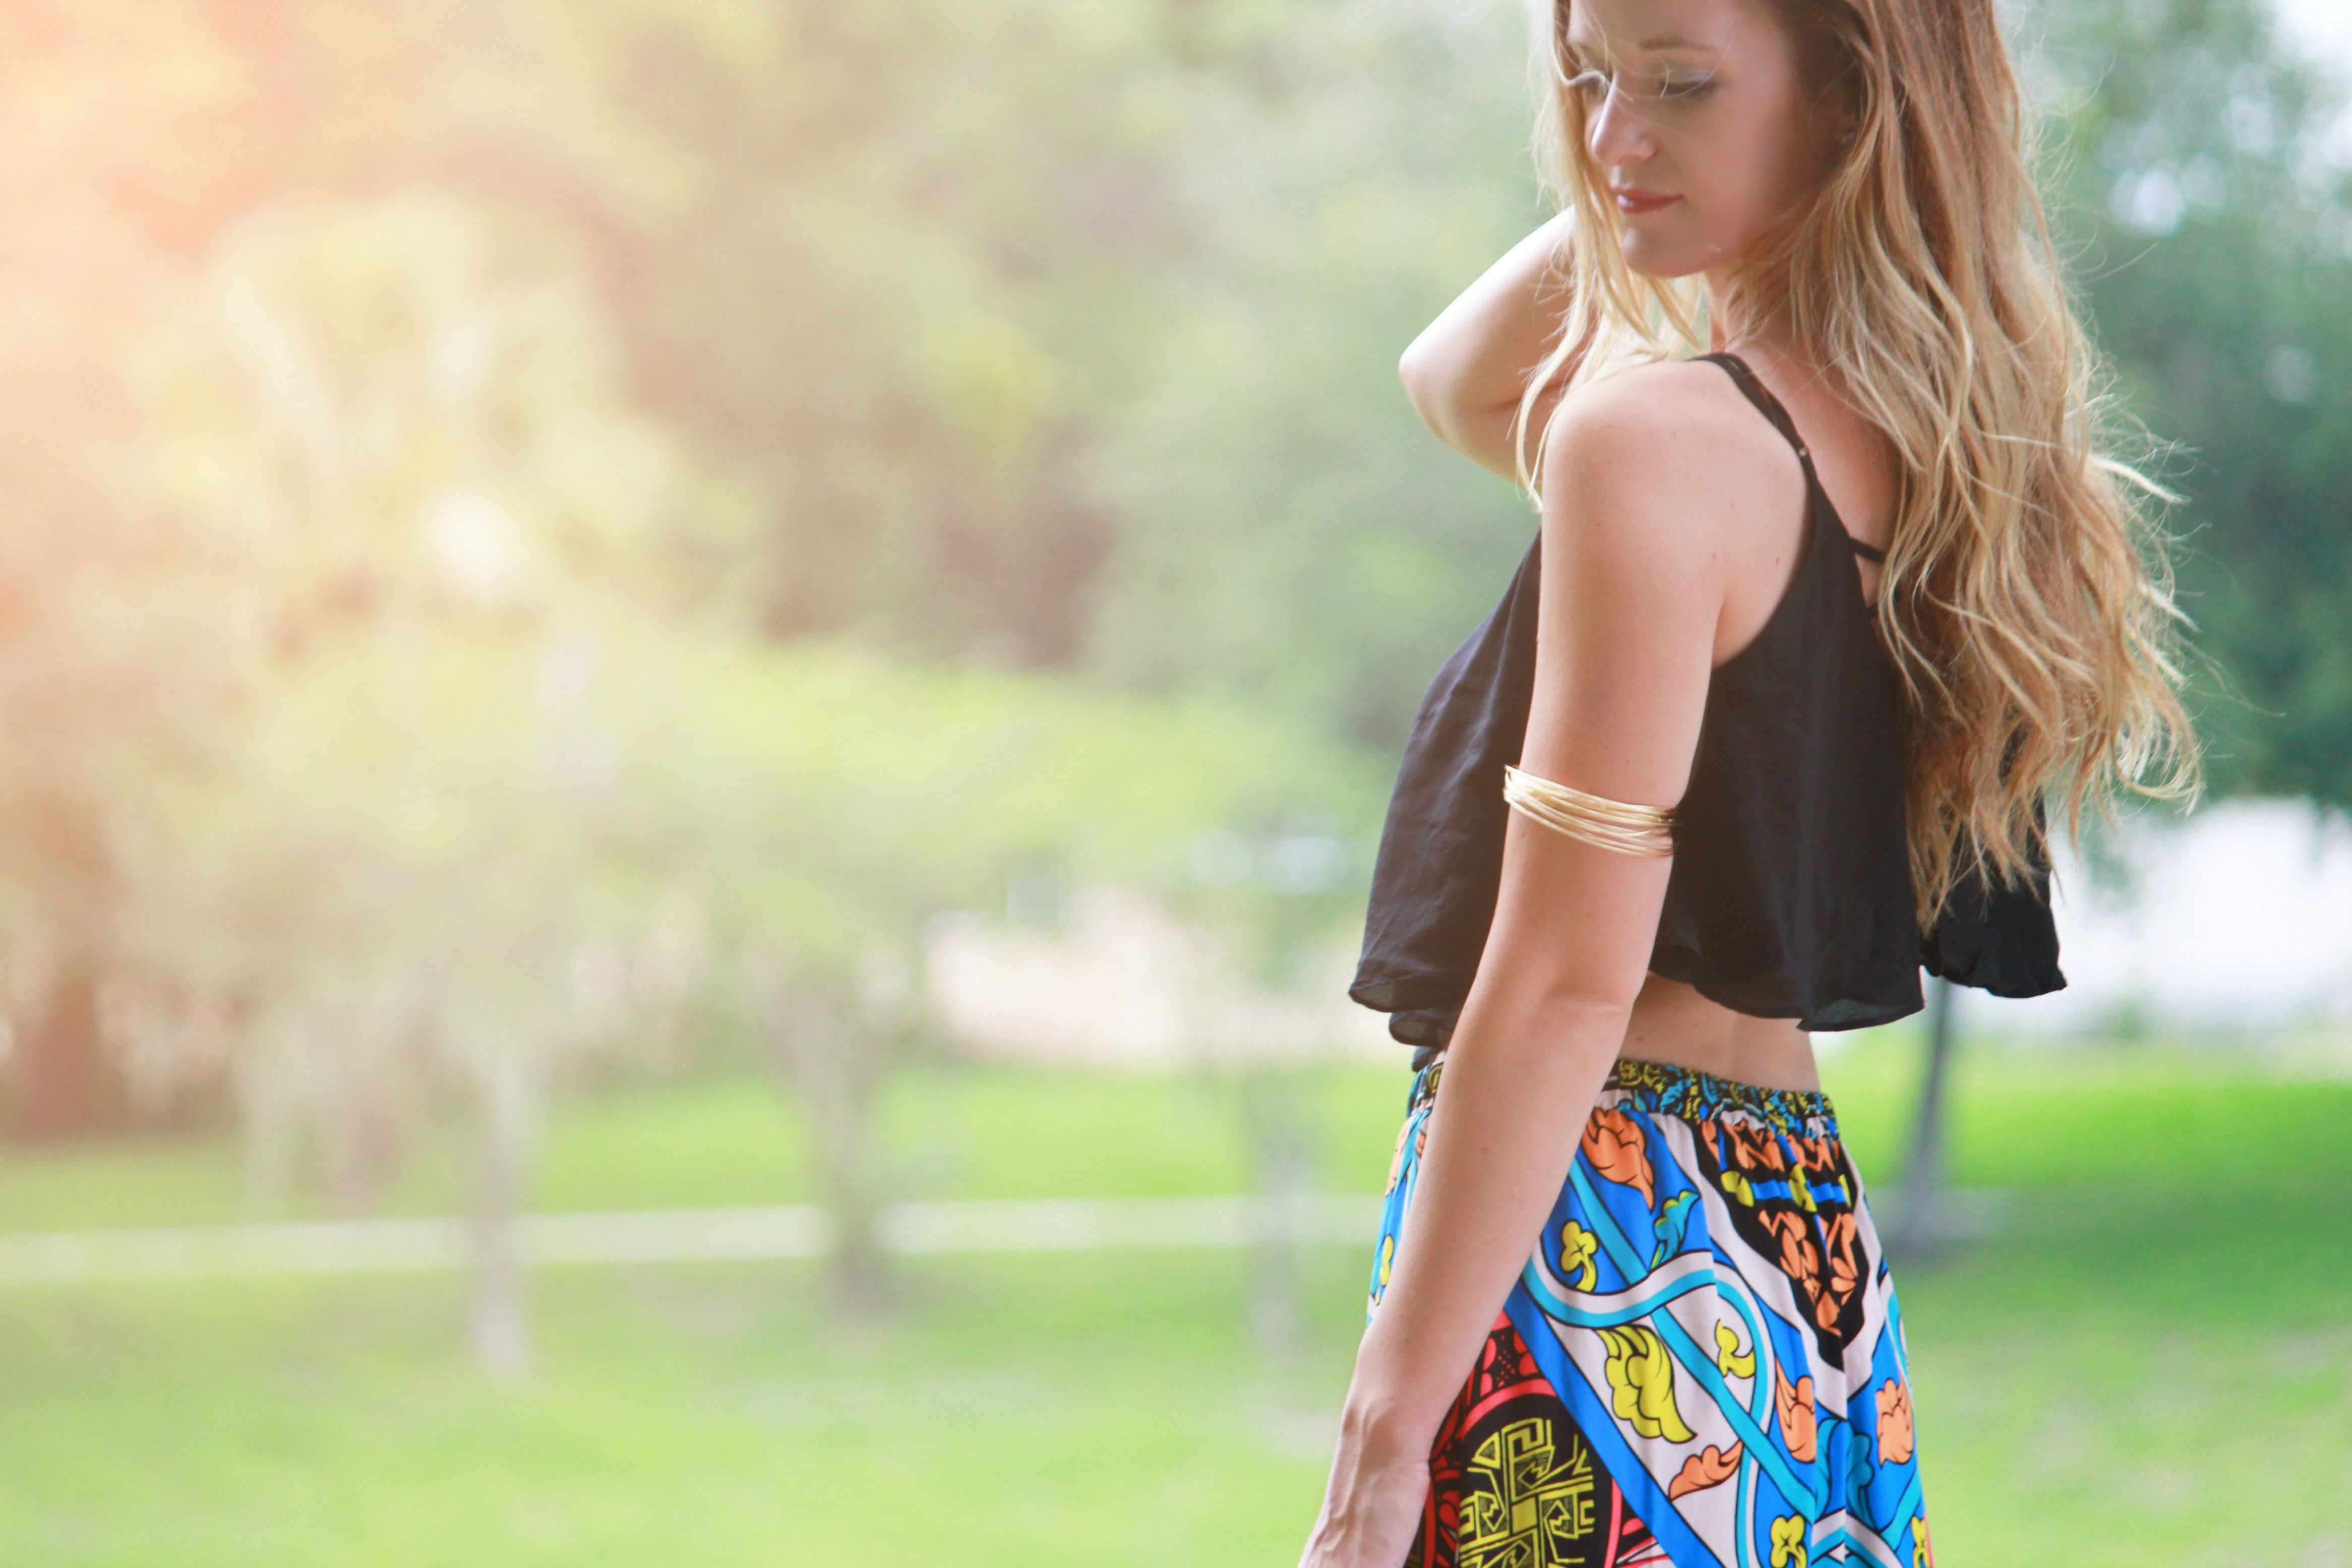 Jane maxi skirt, Colorful maxi skirt, boho outfit, boho chic, arm band outfit, summer outfit, Steve Madden Wedges